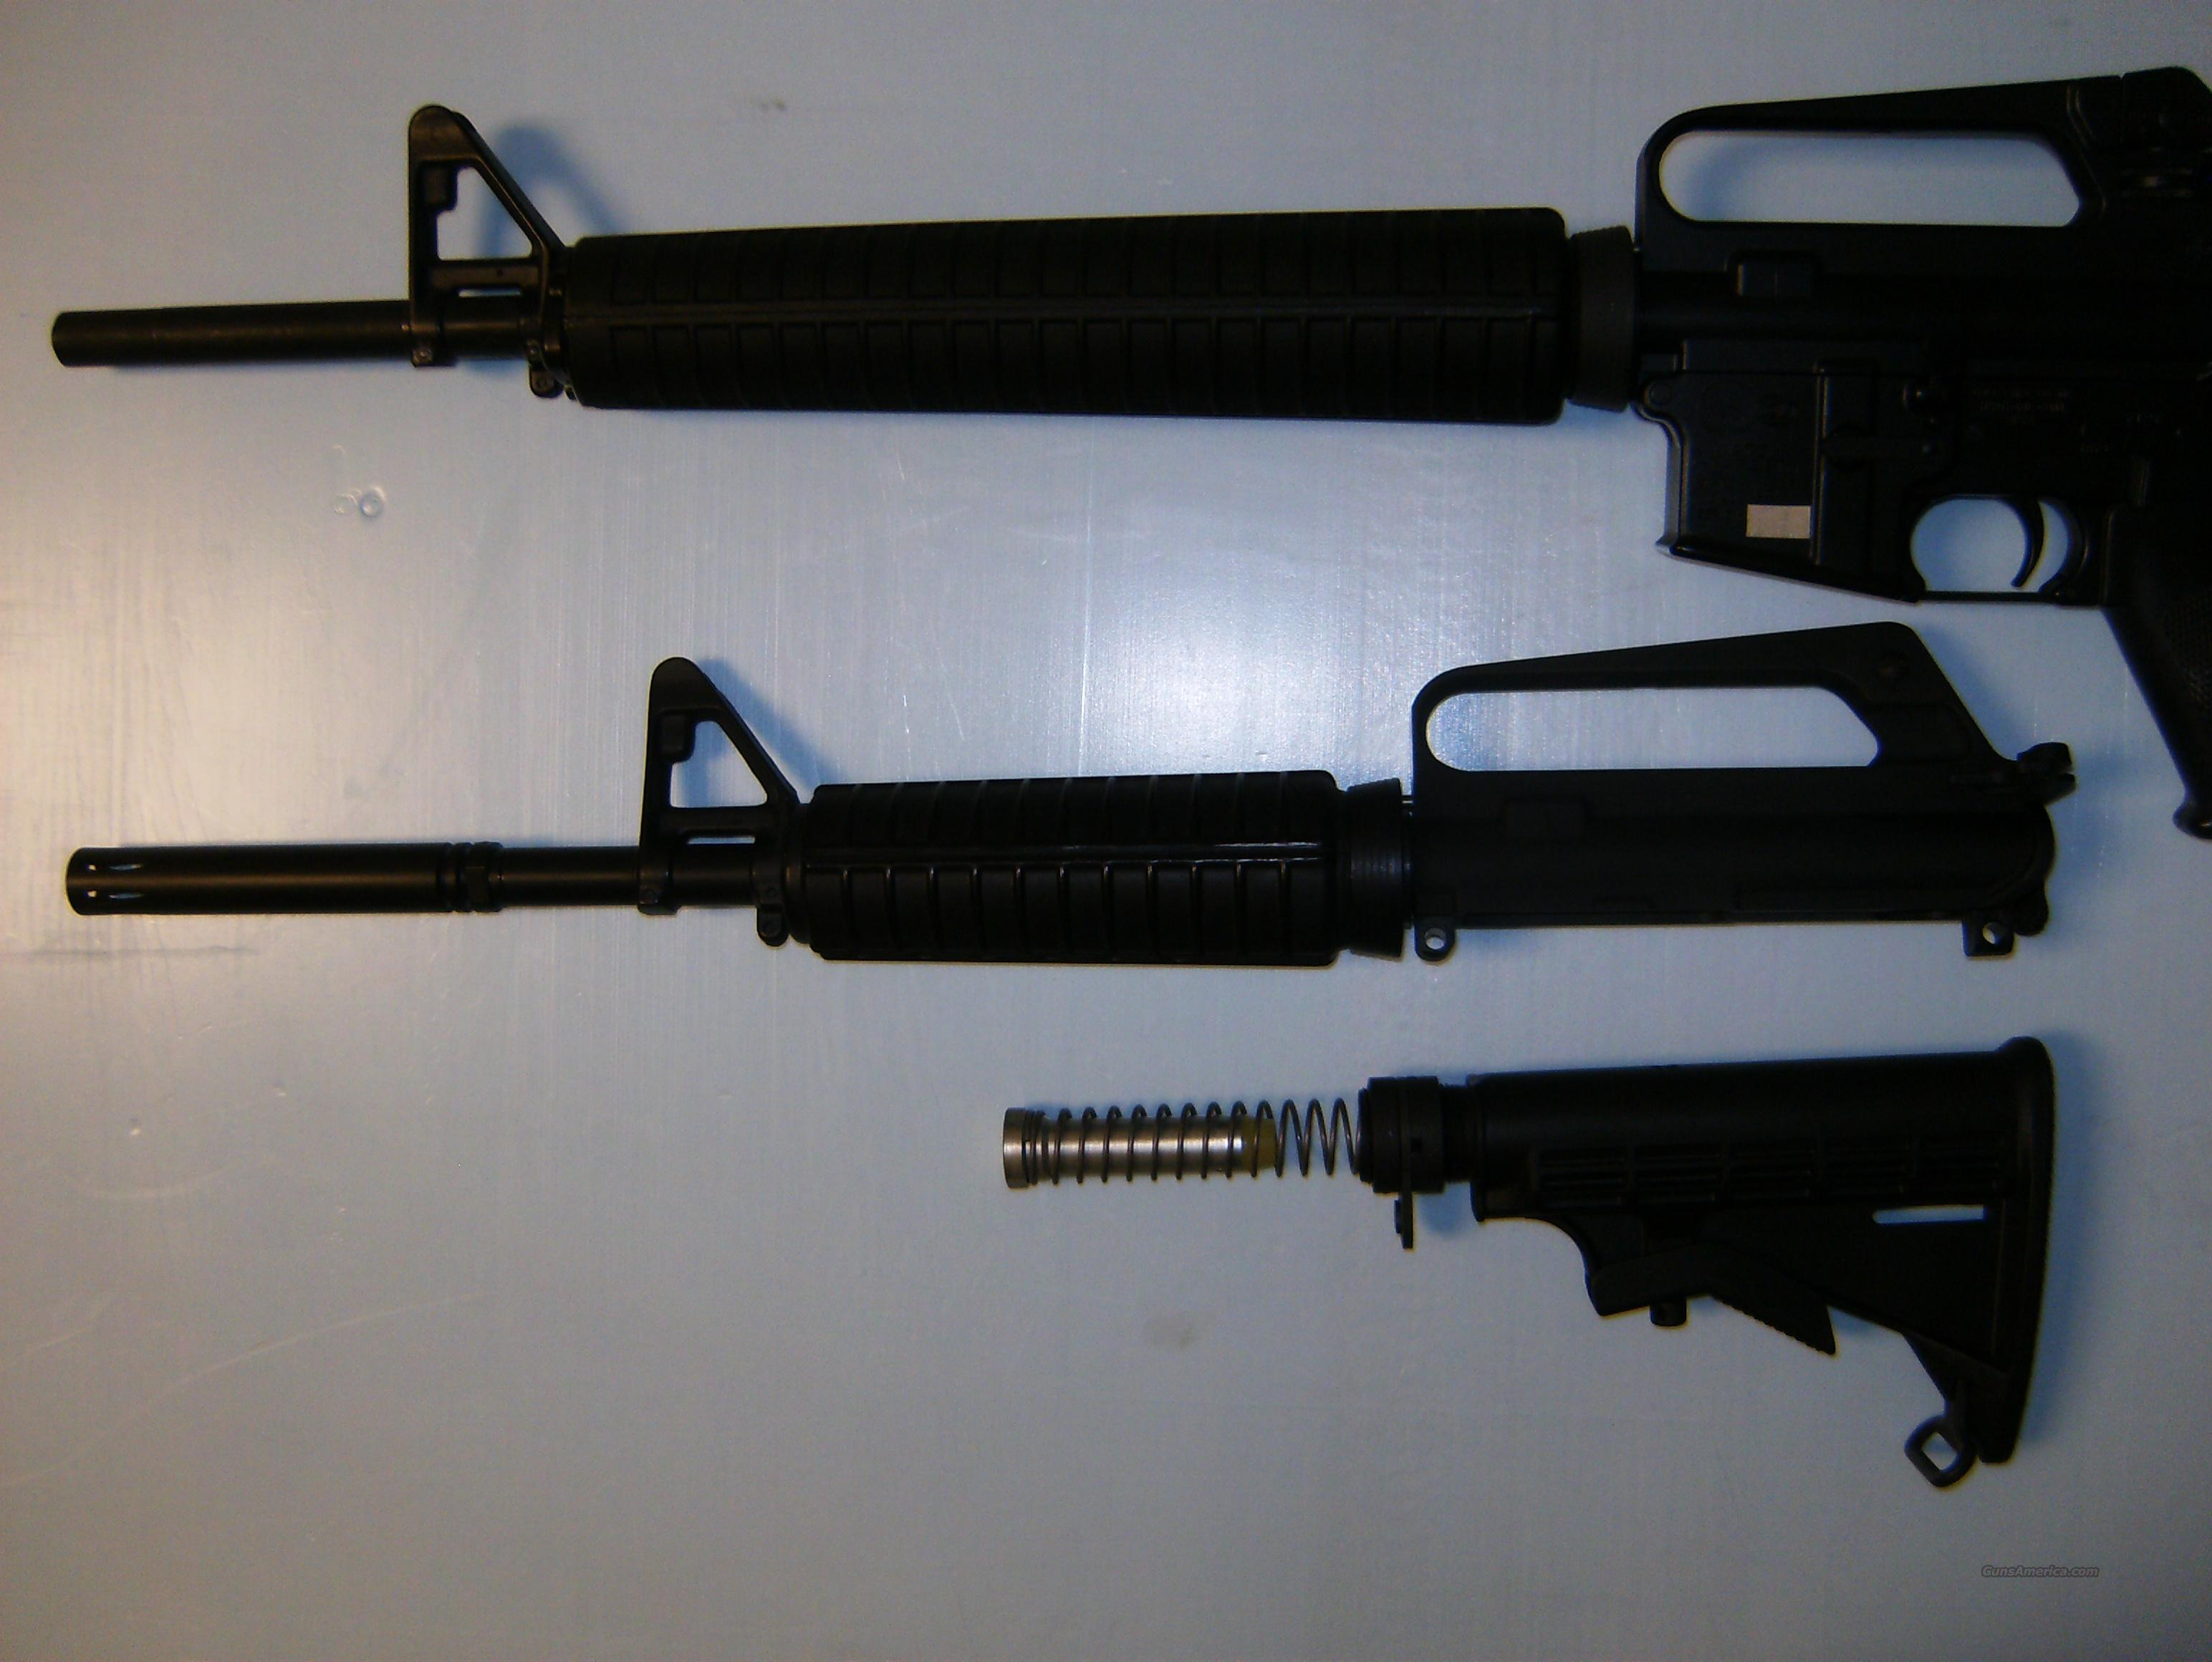 Colt AR-15 AR15 with Extra Bushmaster Parts  Guns > Rifles > Colt Military/Tactical Rifles